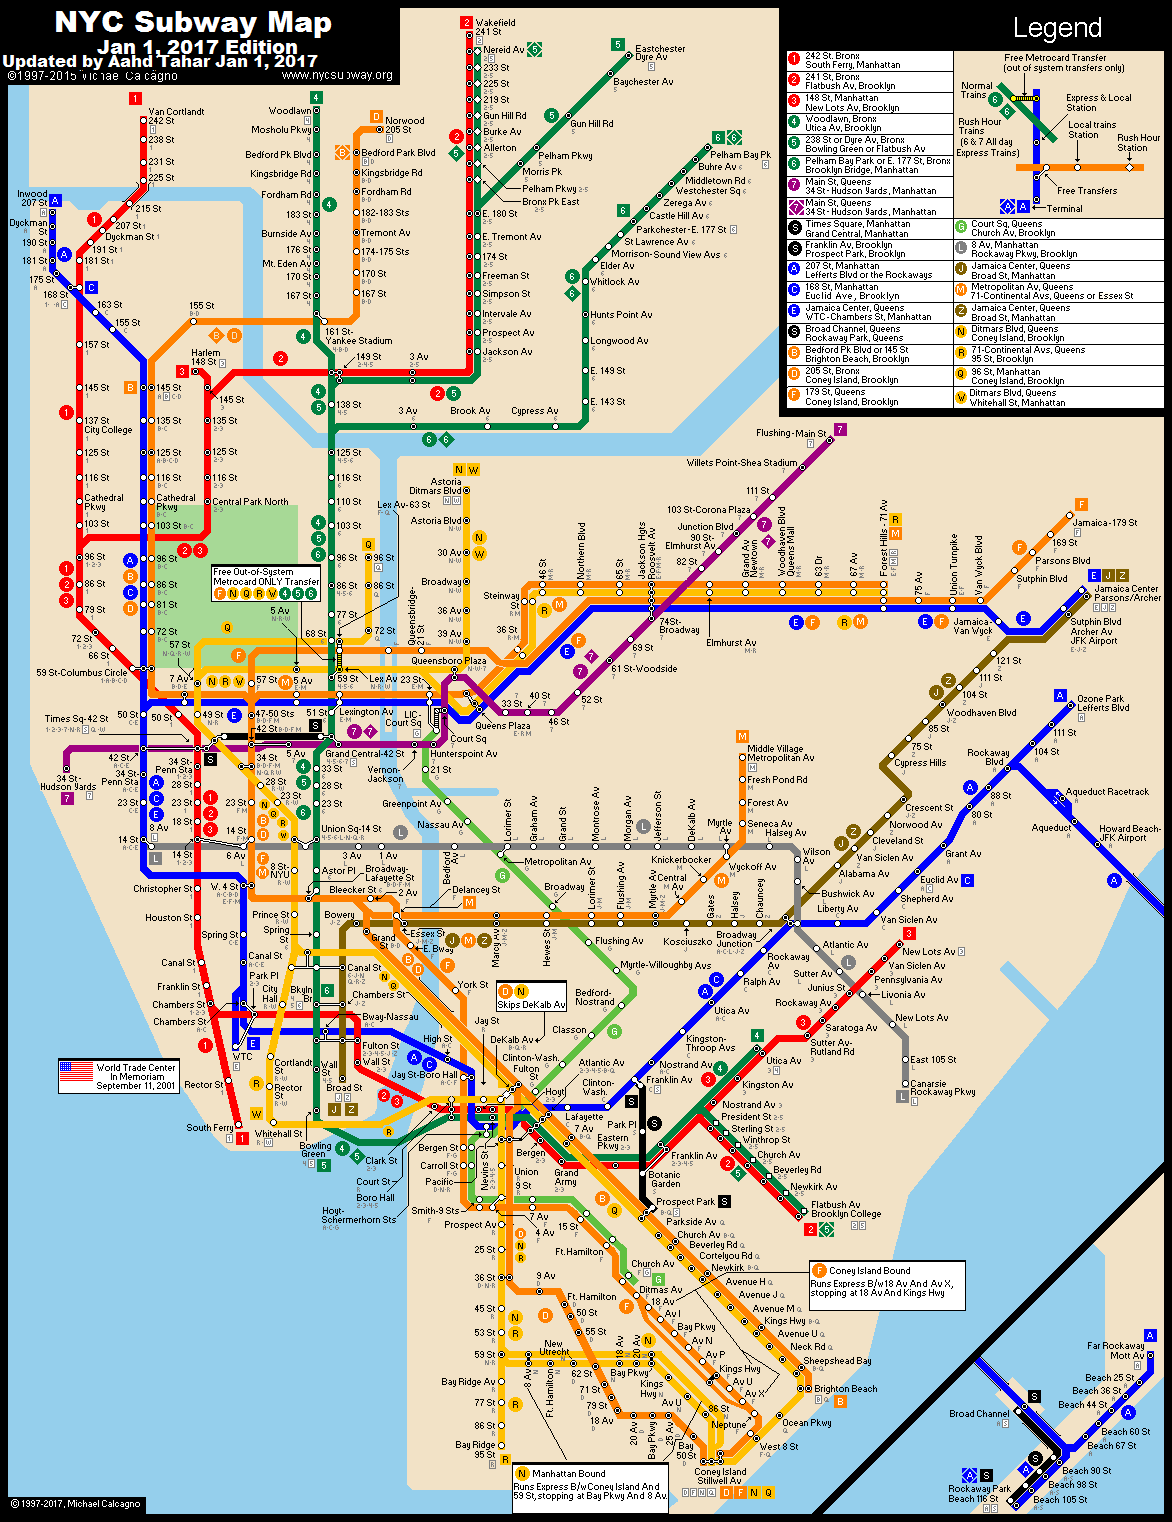 New Tork Subway Map